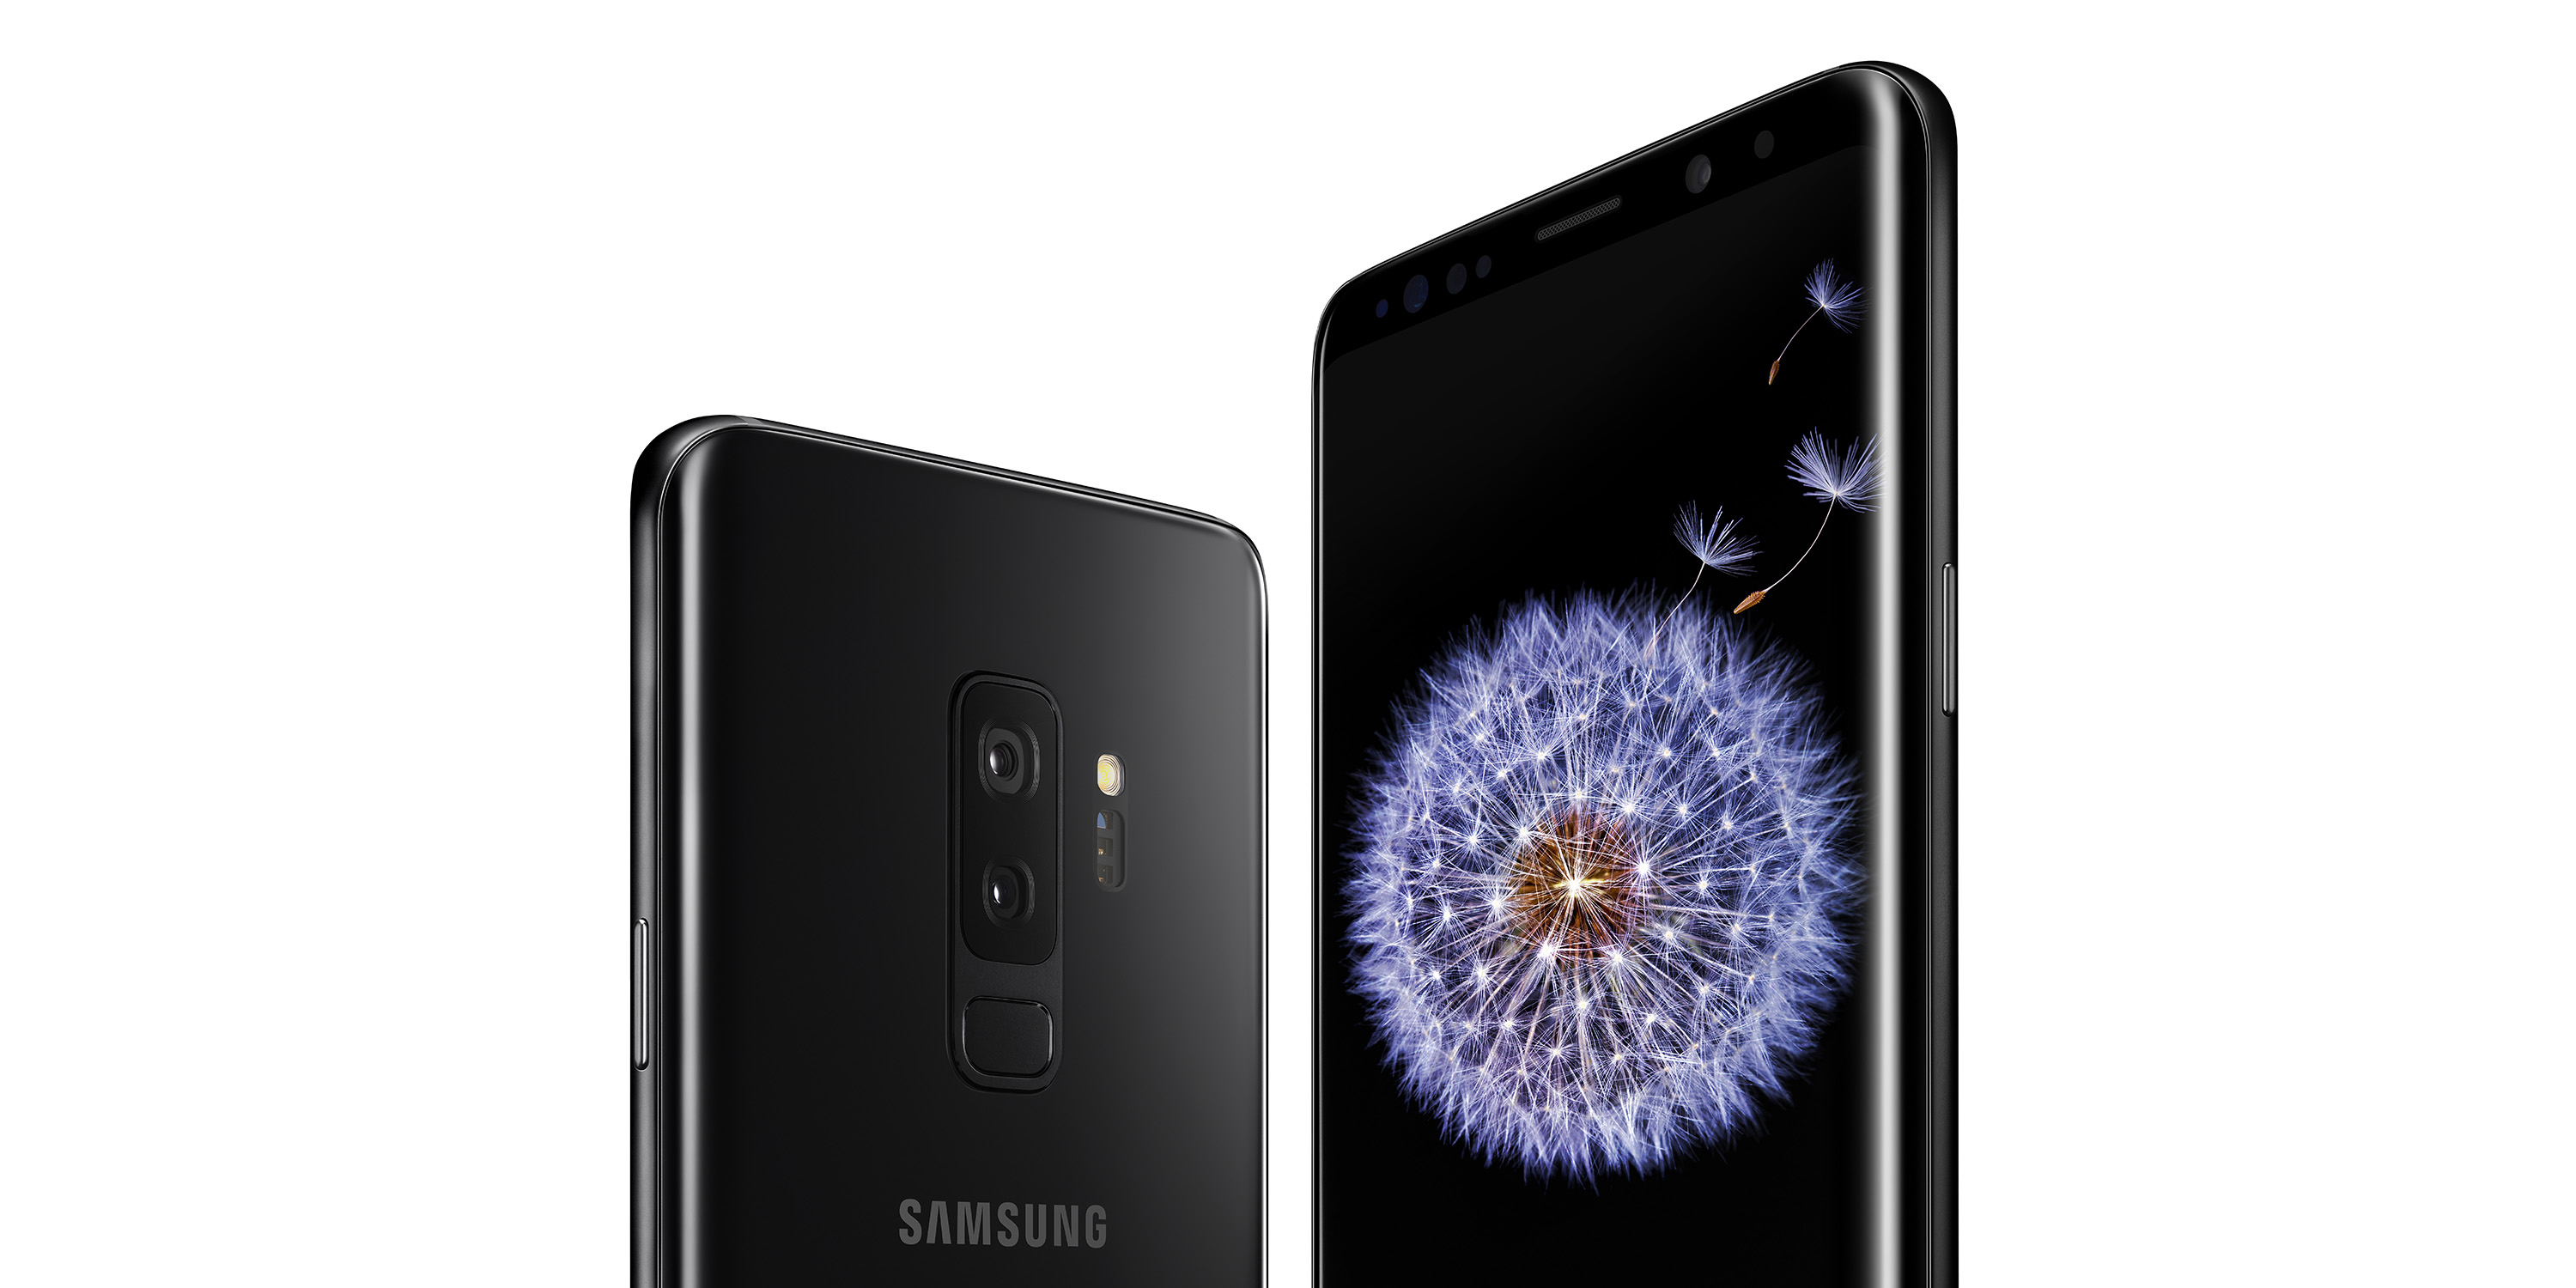 Download the official Samsung Galaxy S9 & S9+ sounds & ringtones